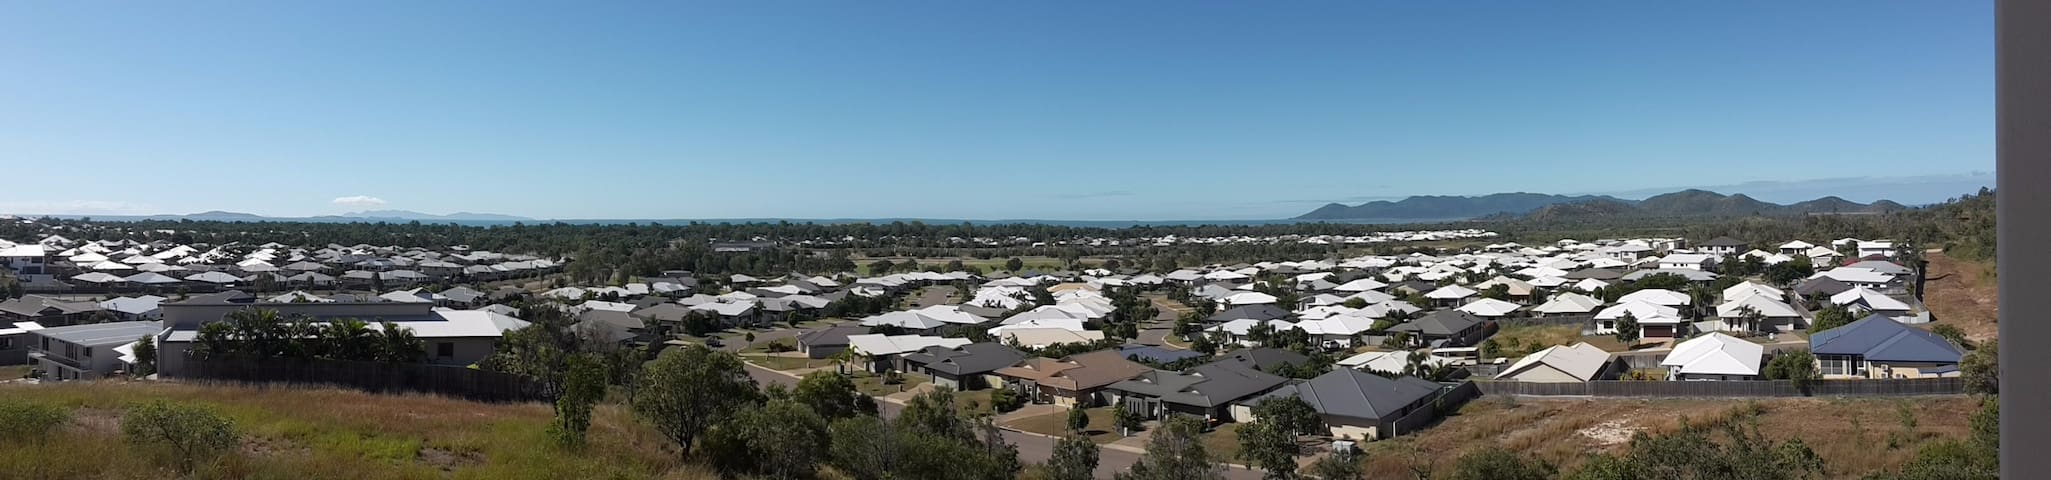 Over looking Bushland Beach and the ocean.